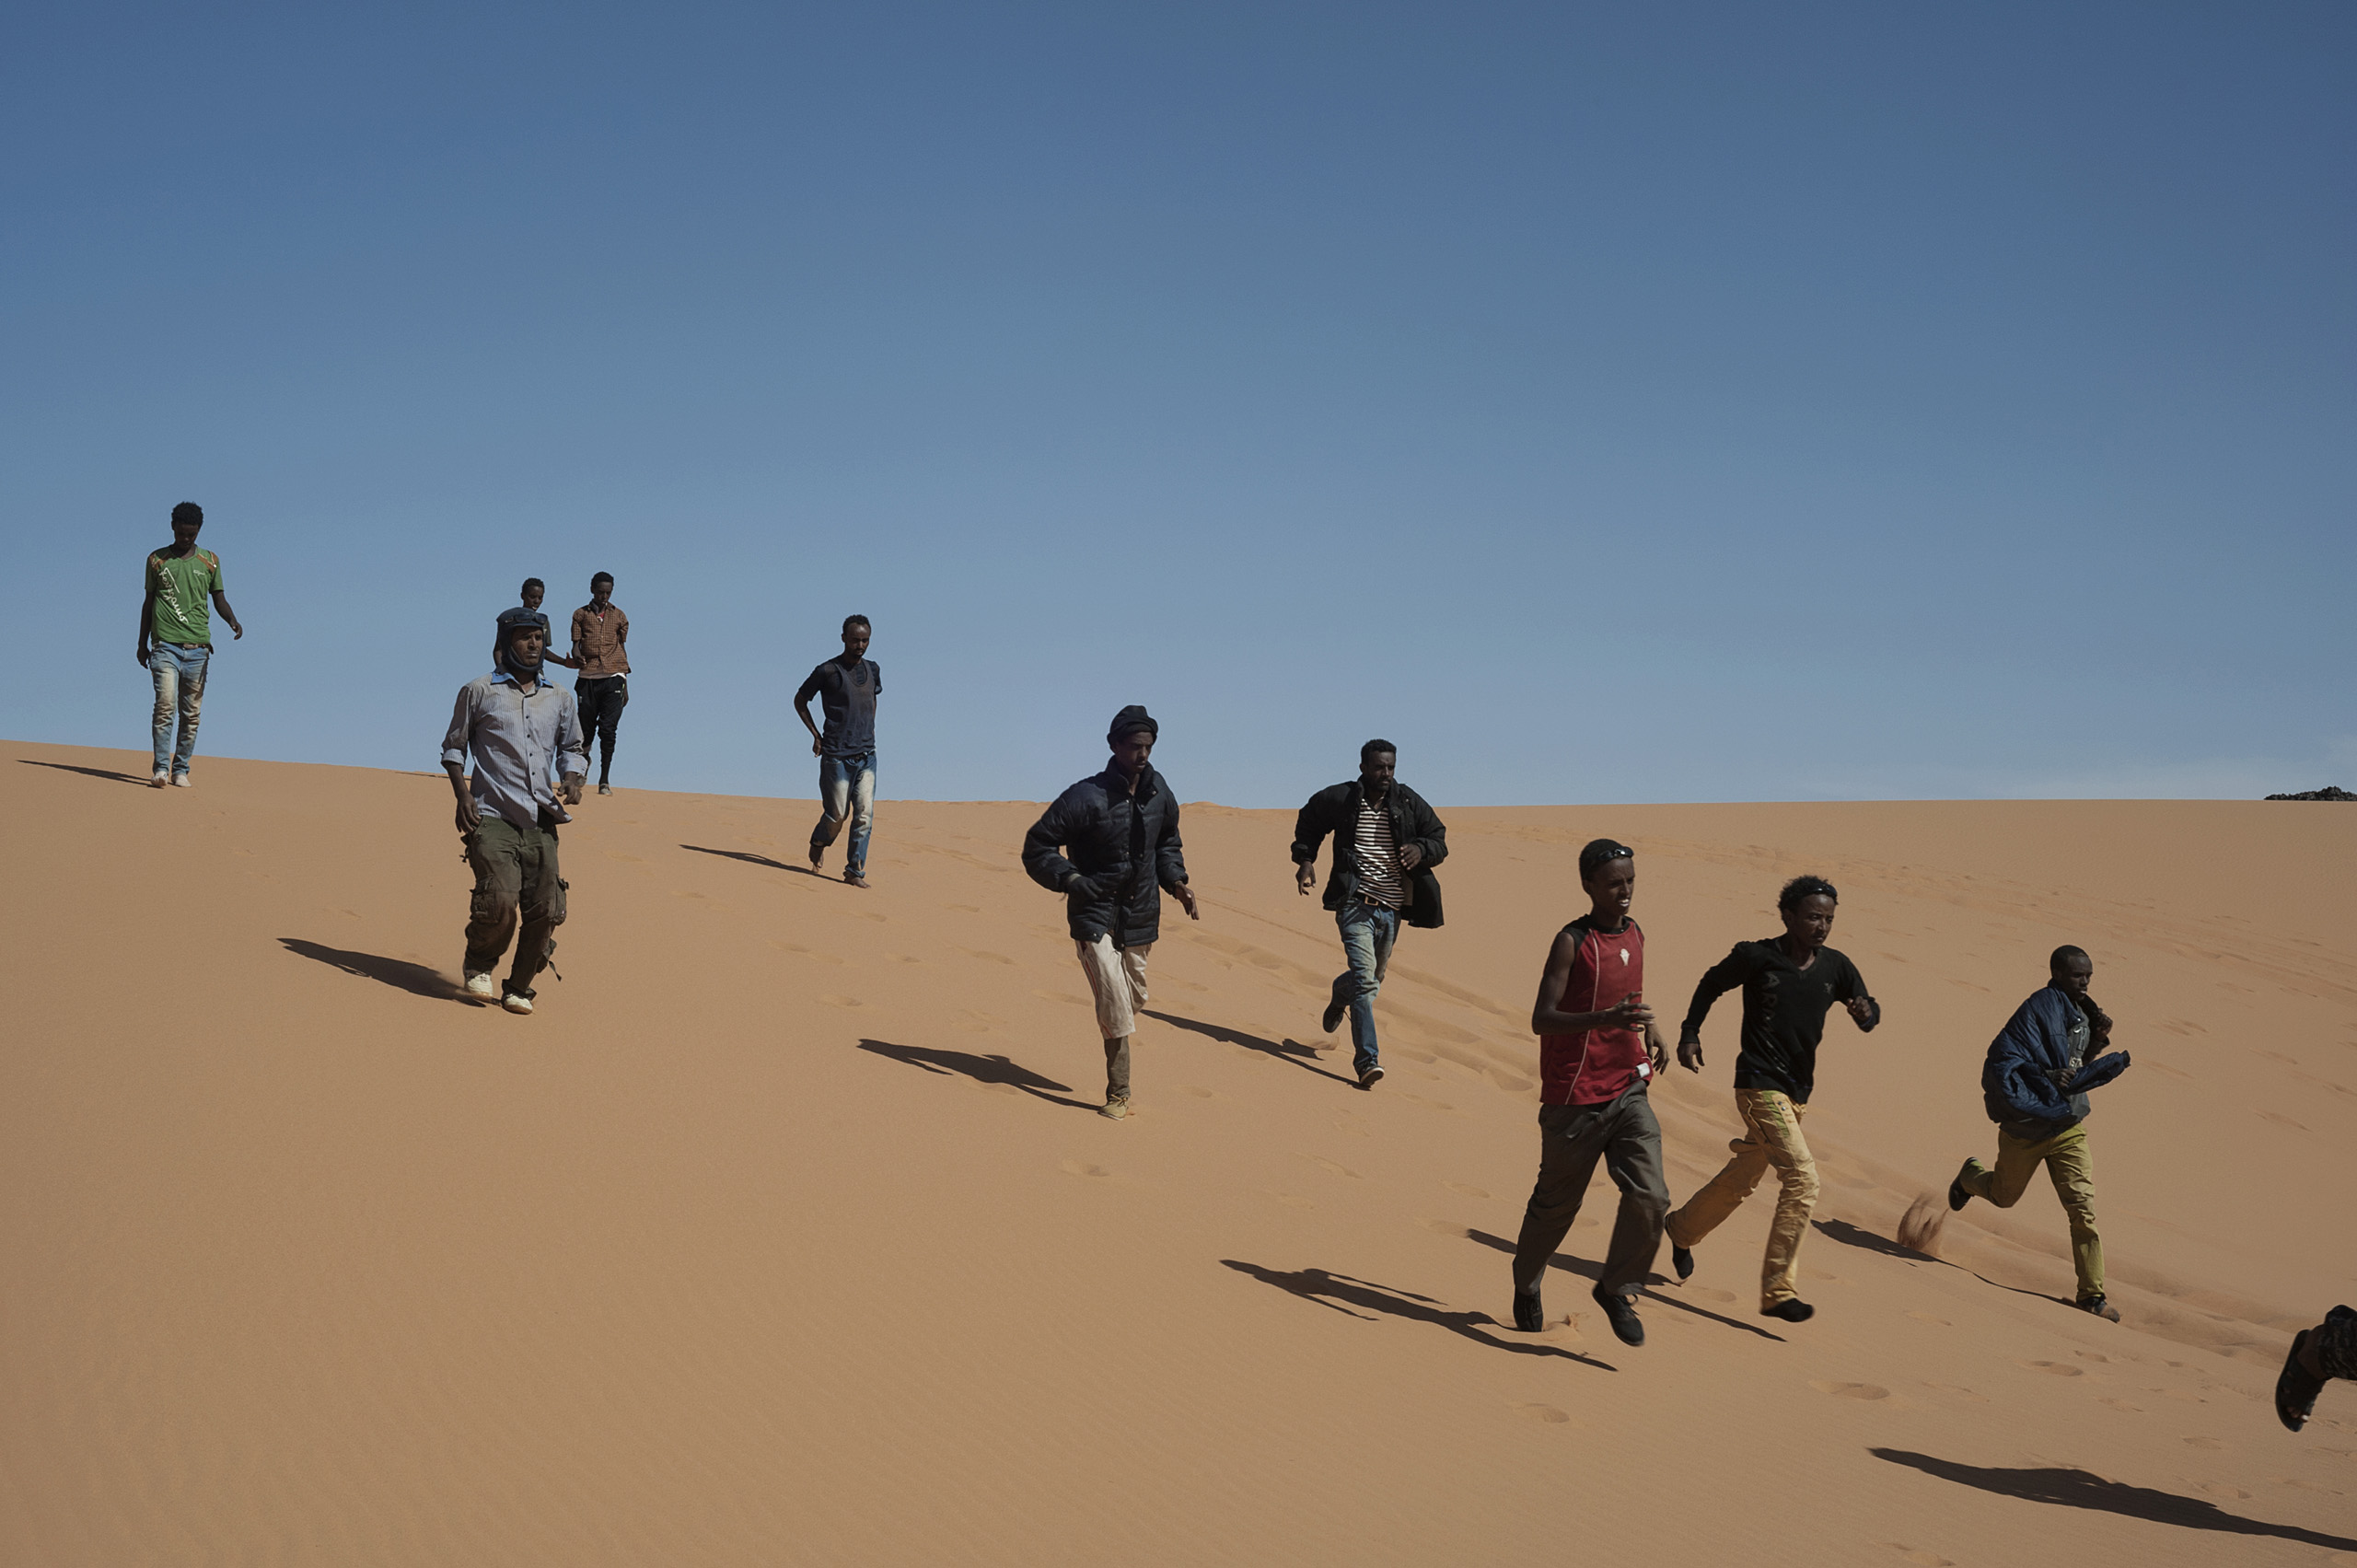 Refugees run to reach their transport to continue their journey in Libya, near the border with Egypt, May 18, 2014.